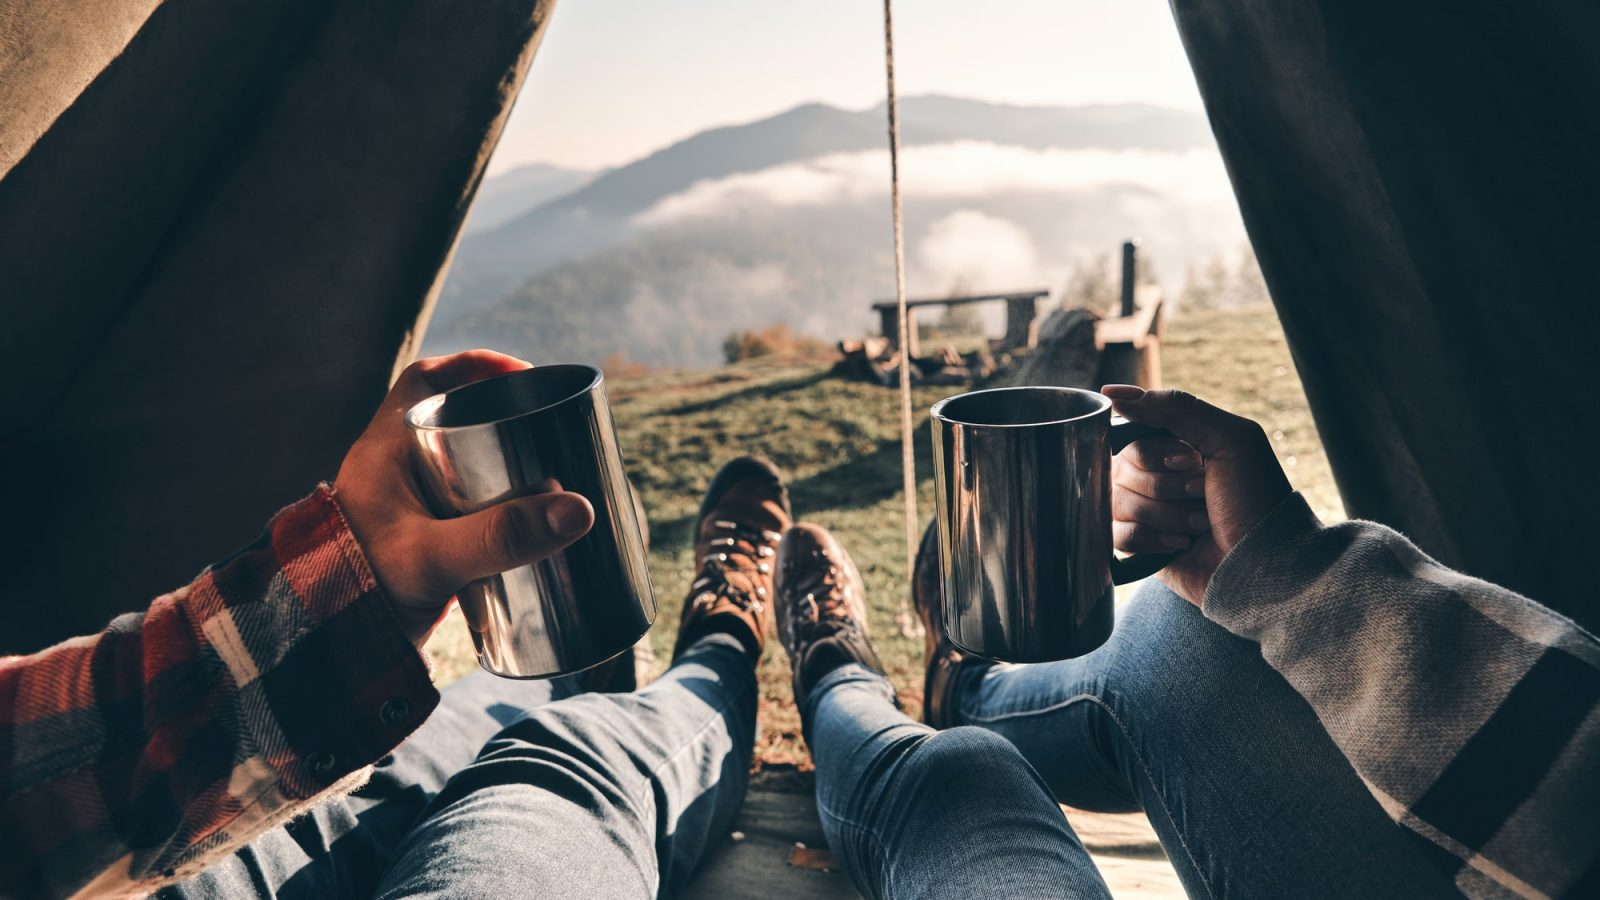 Having hot drinks inside camping tent.